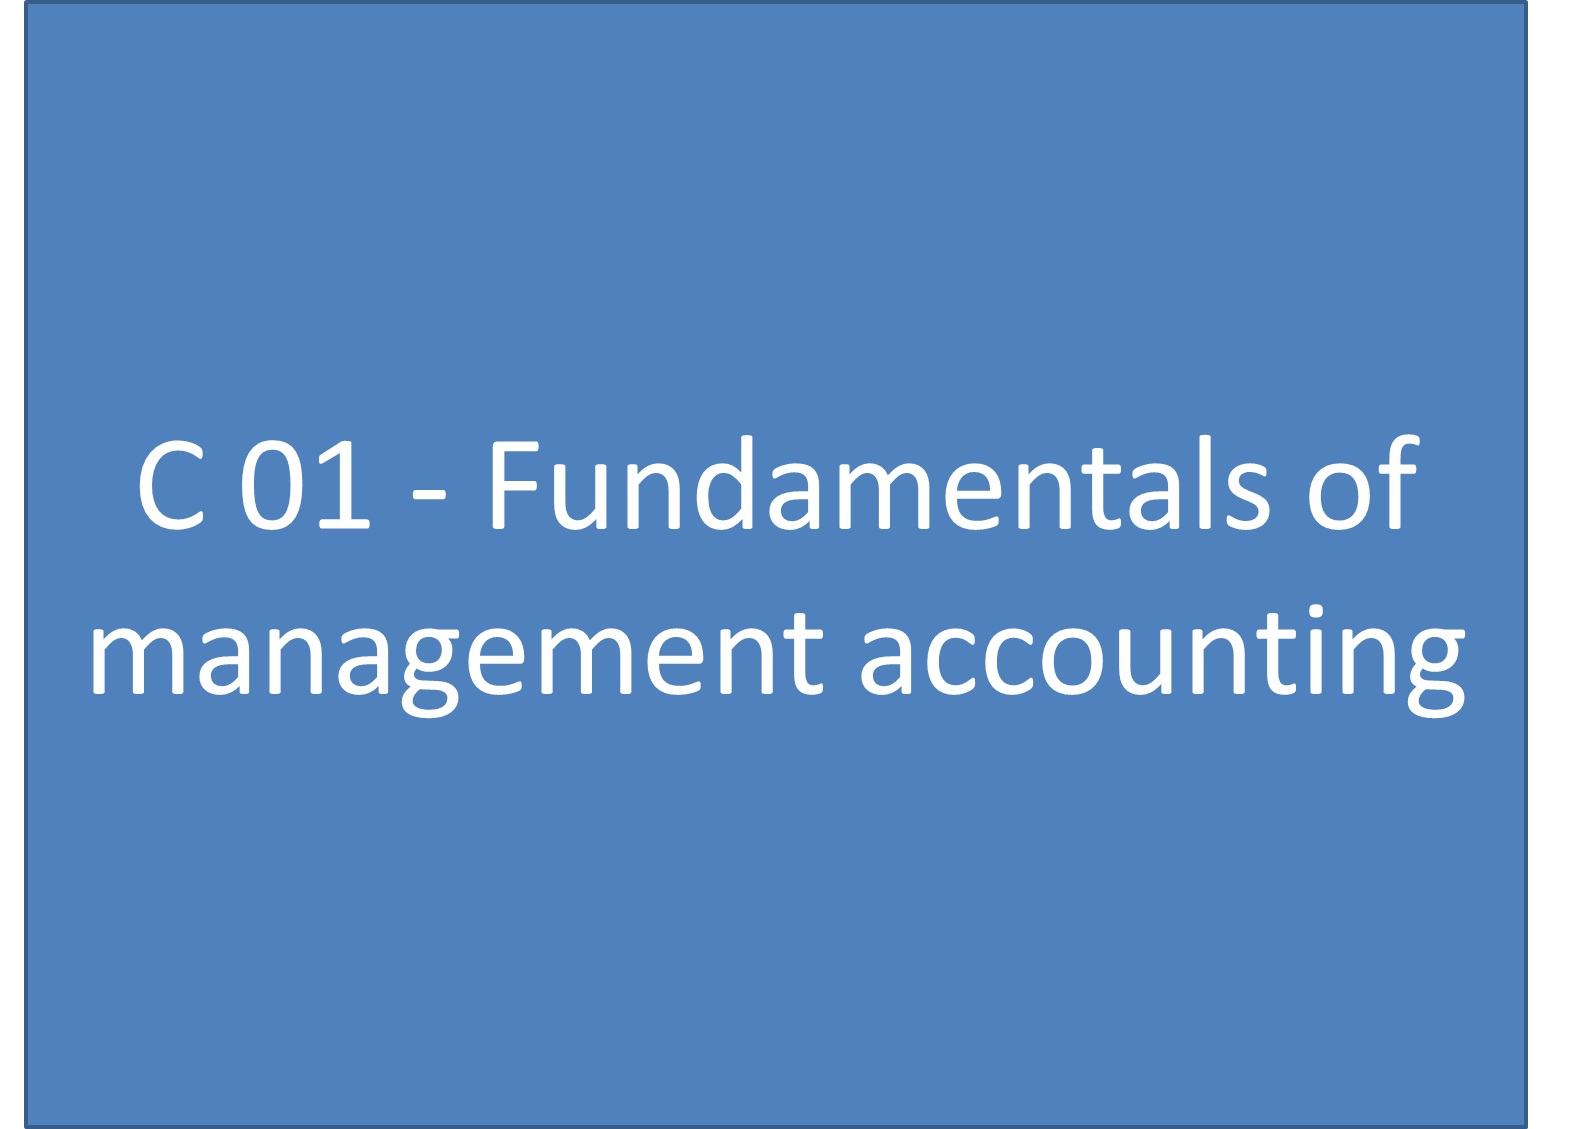 fundamentals of management accounting This is the first course in the cima certificate in business accounting programme it introduces students to core management accounting topics and principles such as cost determinations, breakeven analysis, standard costing, cost and accounting syste.